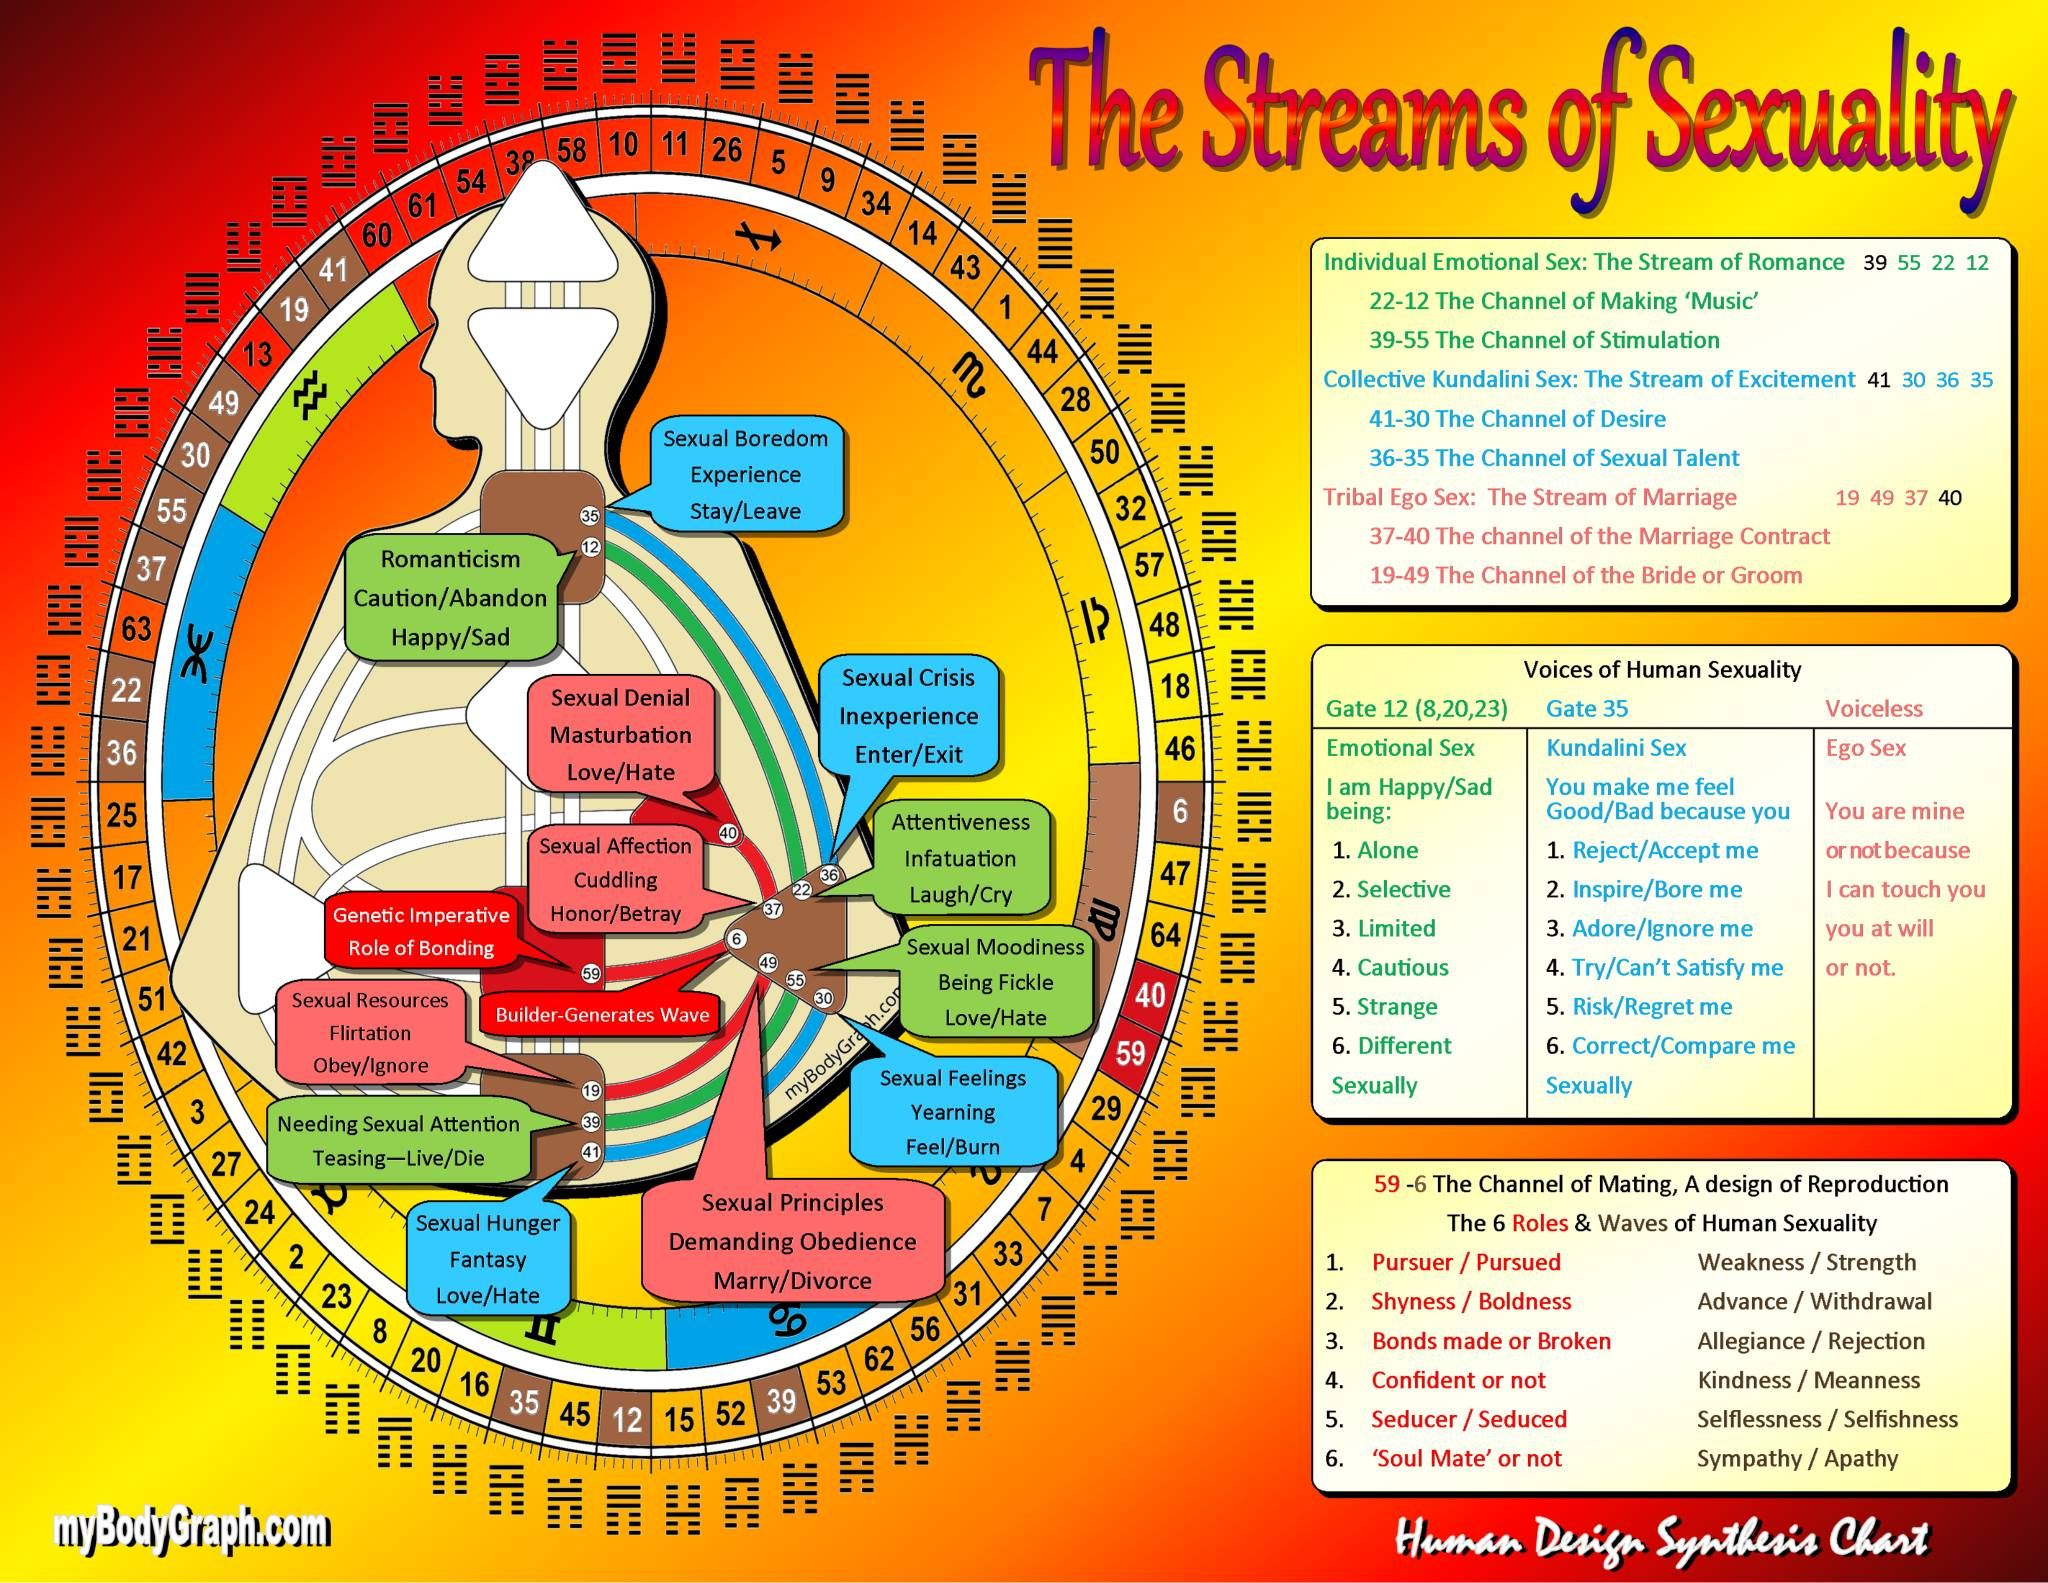 Streams of Sexuality Human design, Human design system